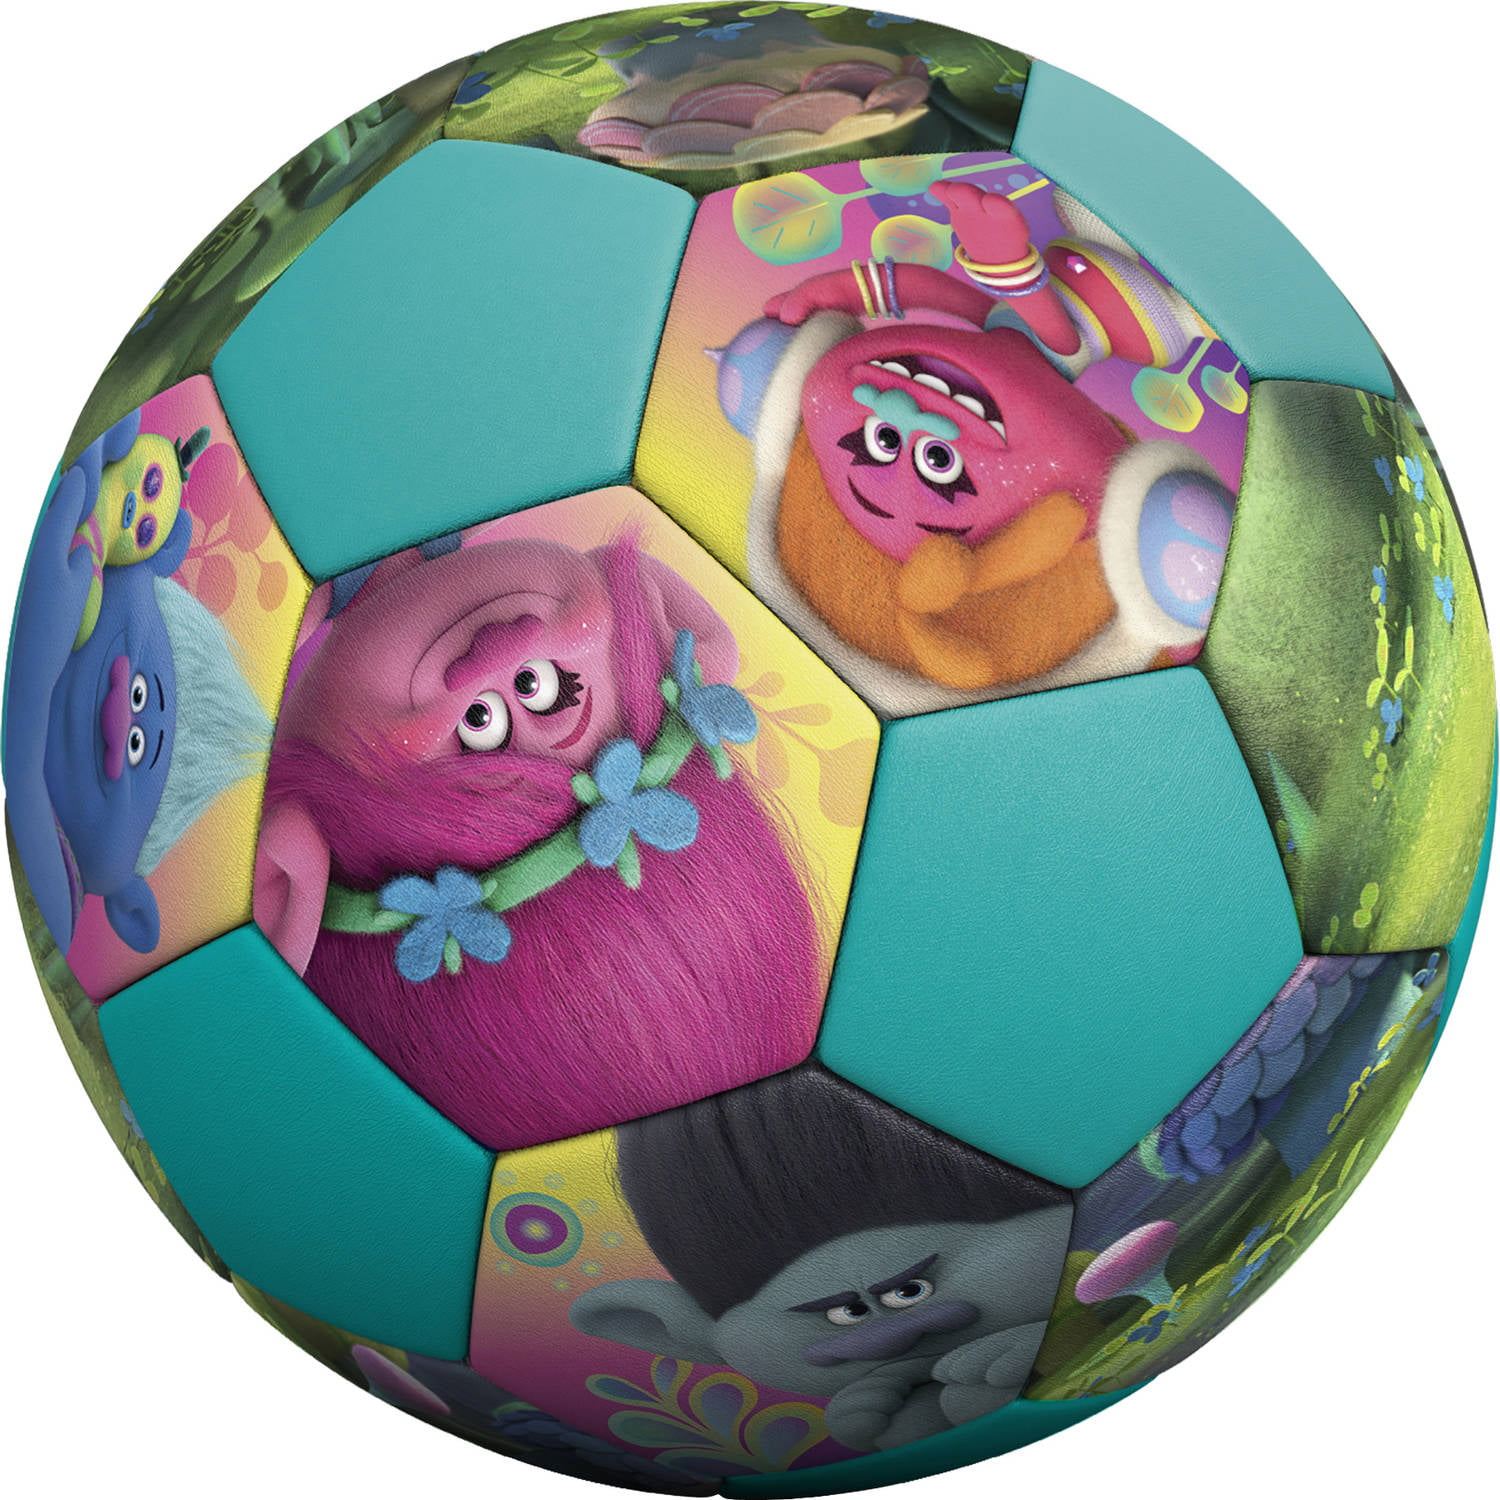 Jr. Athletic Dreamworks Trolls PVC Soccer Ball by